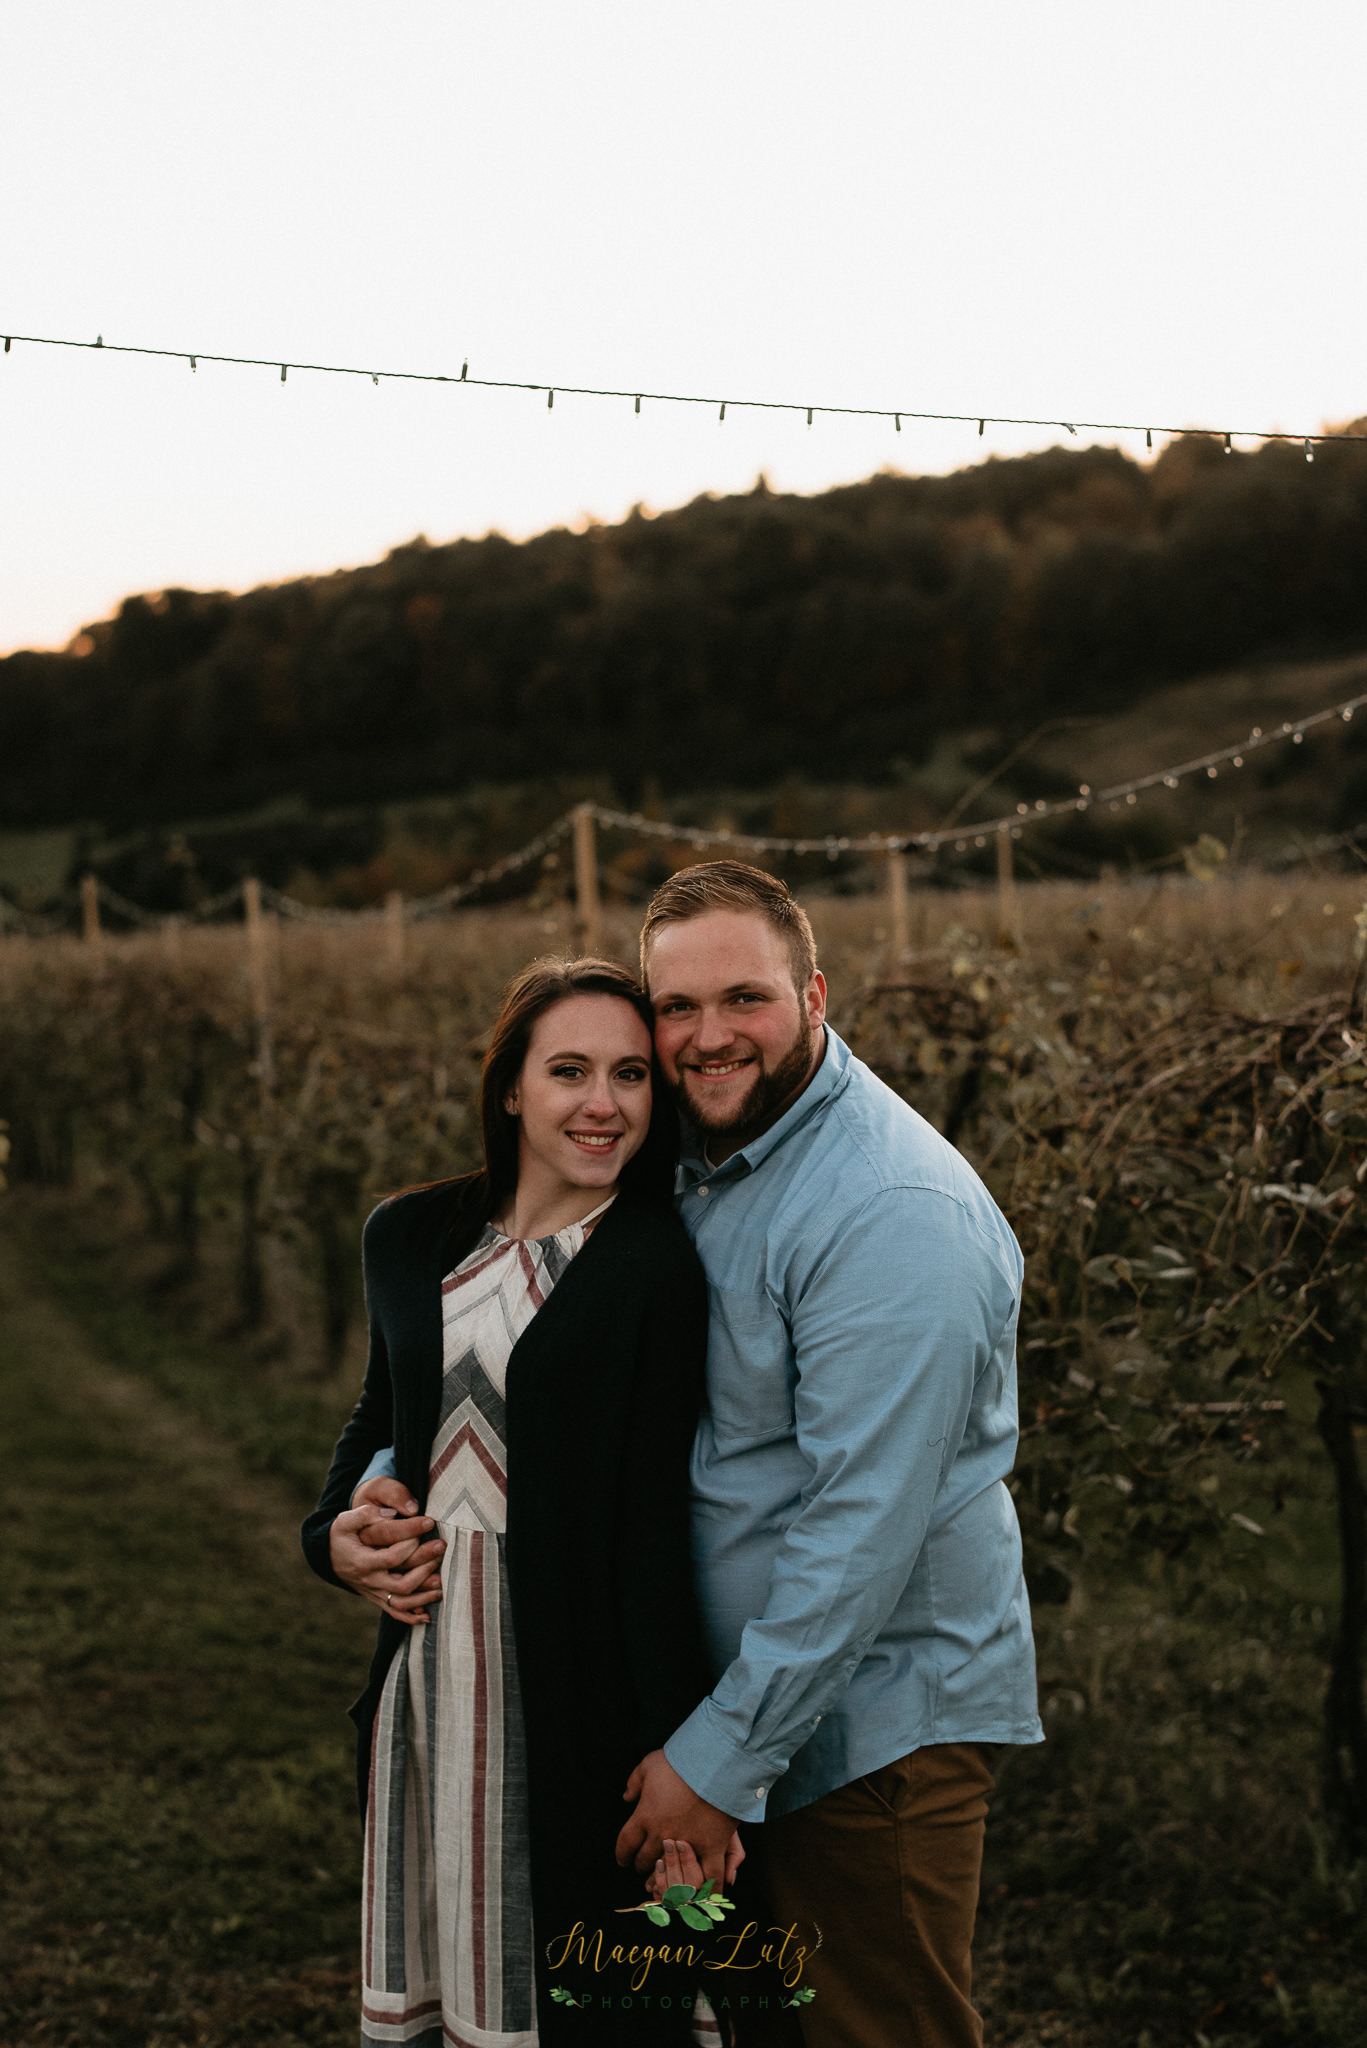 Poconos-NEPA-Wedding-Engagement-Photographer-session-at-Blue-Ridge-Estate-Vineyard-Winery-29.jpg